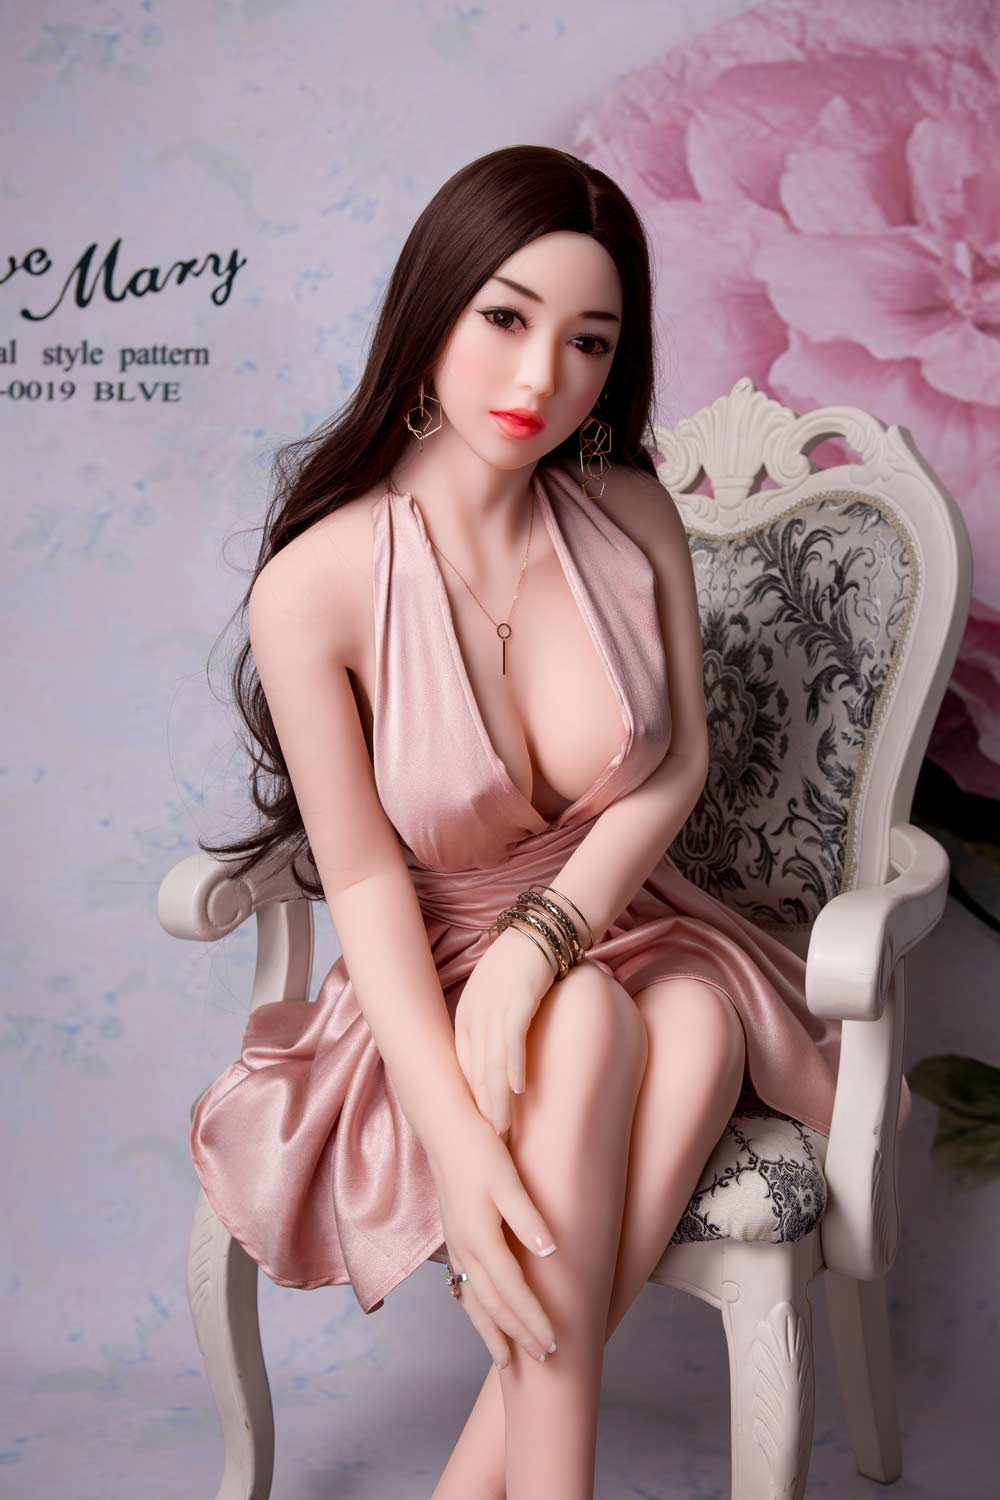 Sex doll with hands touching calves